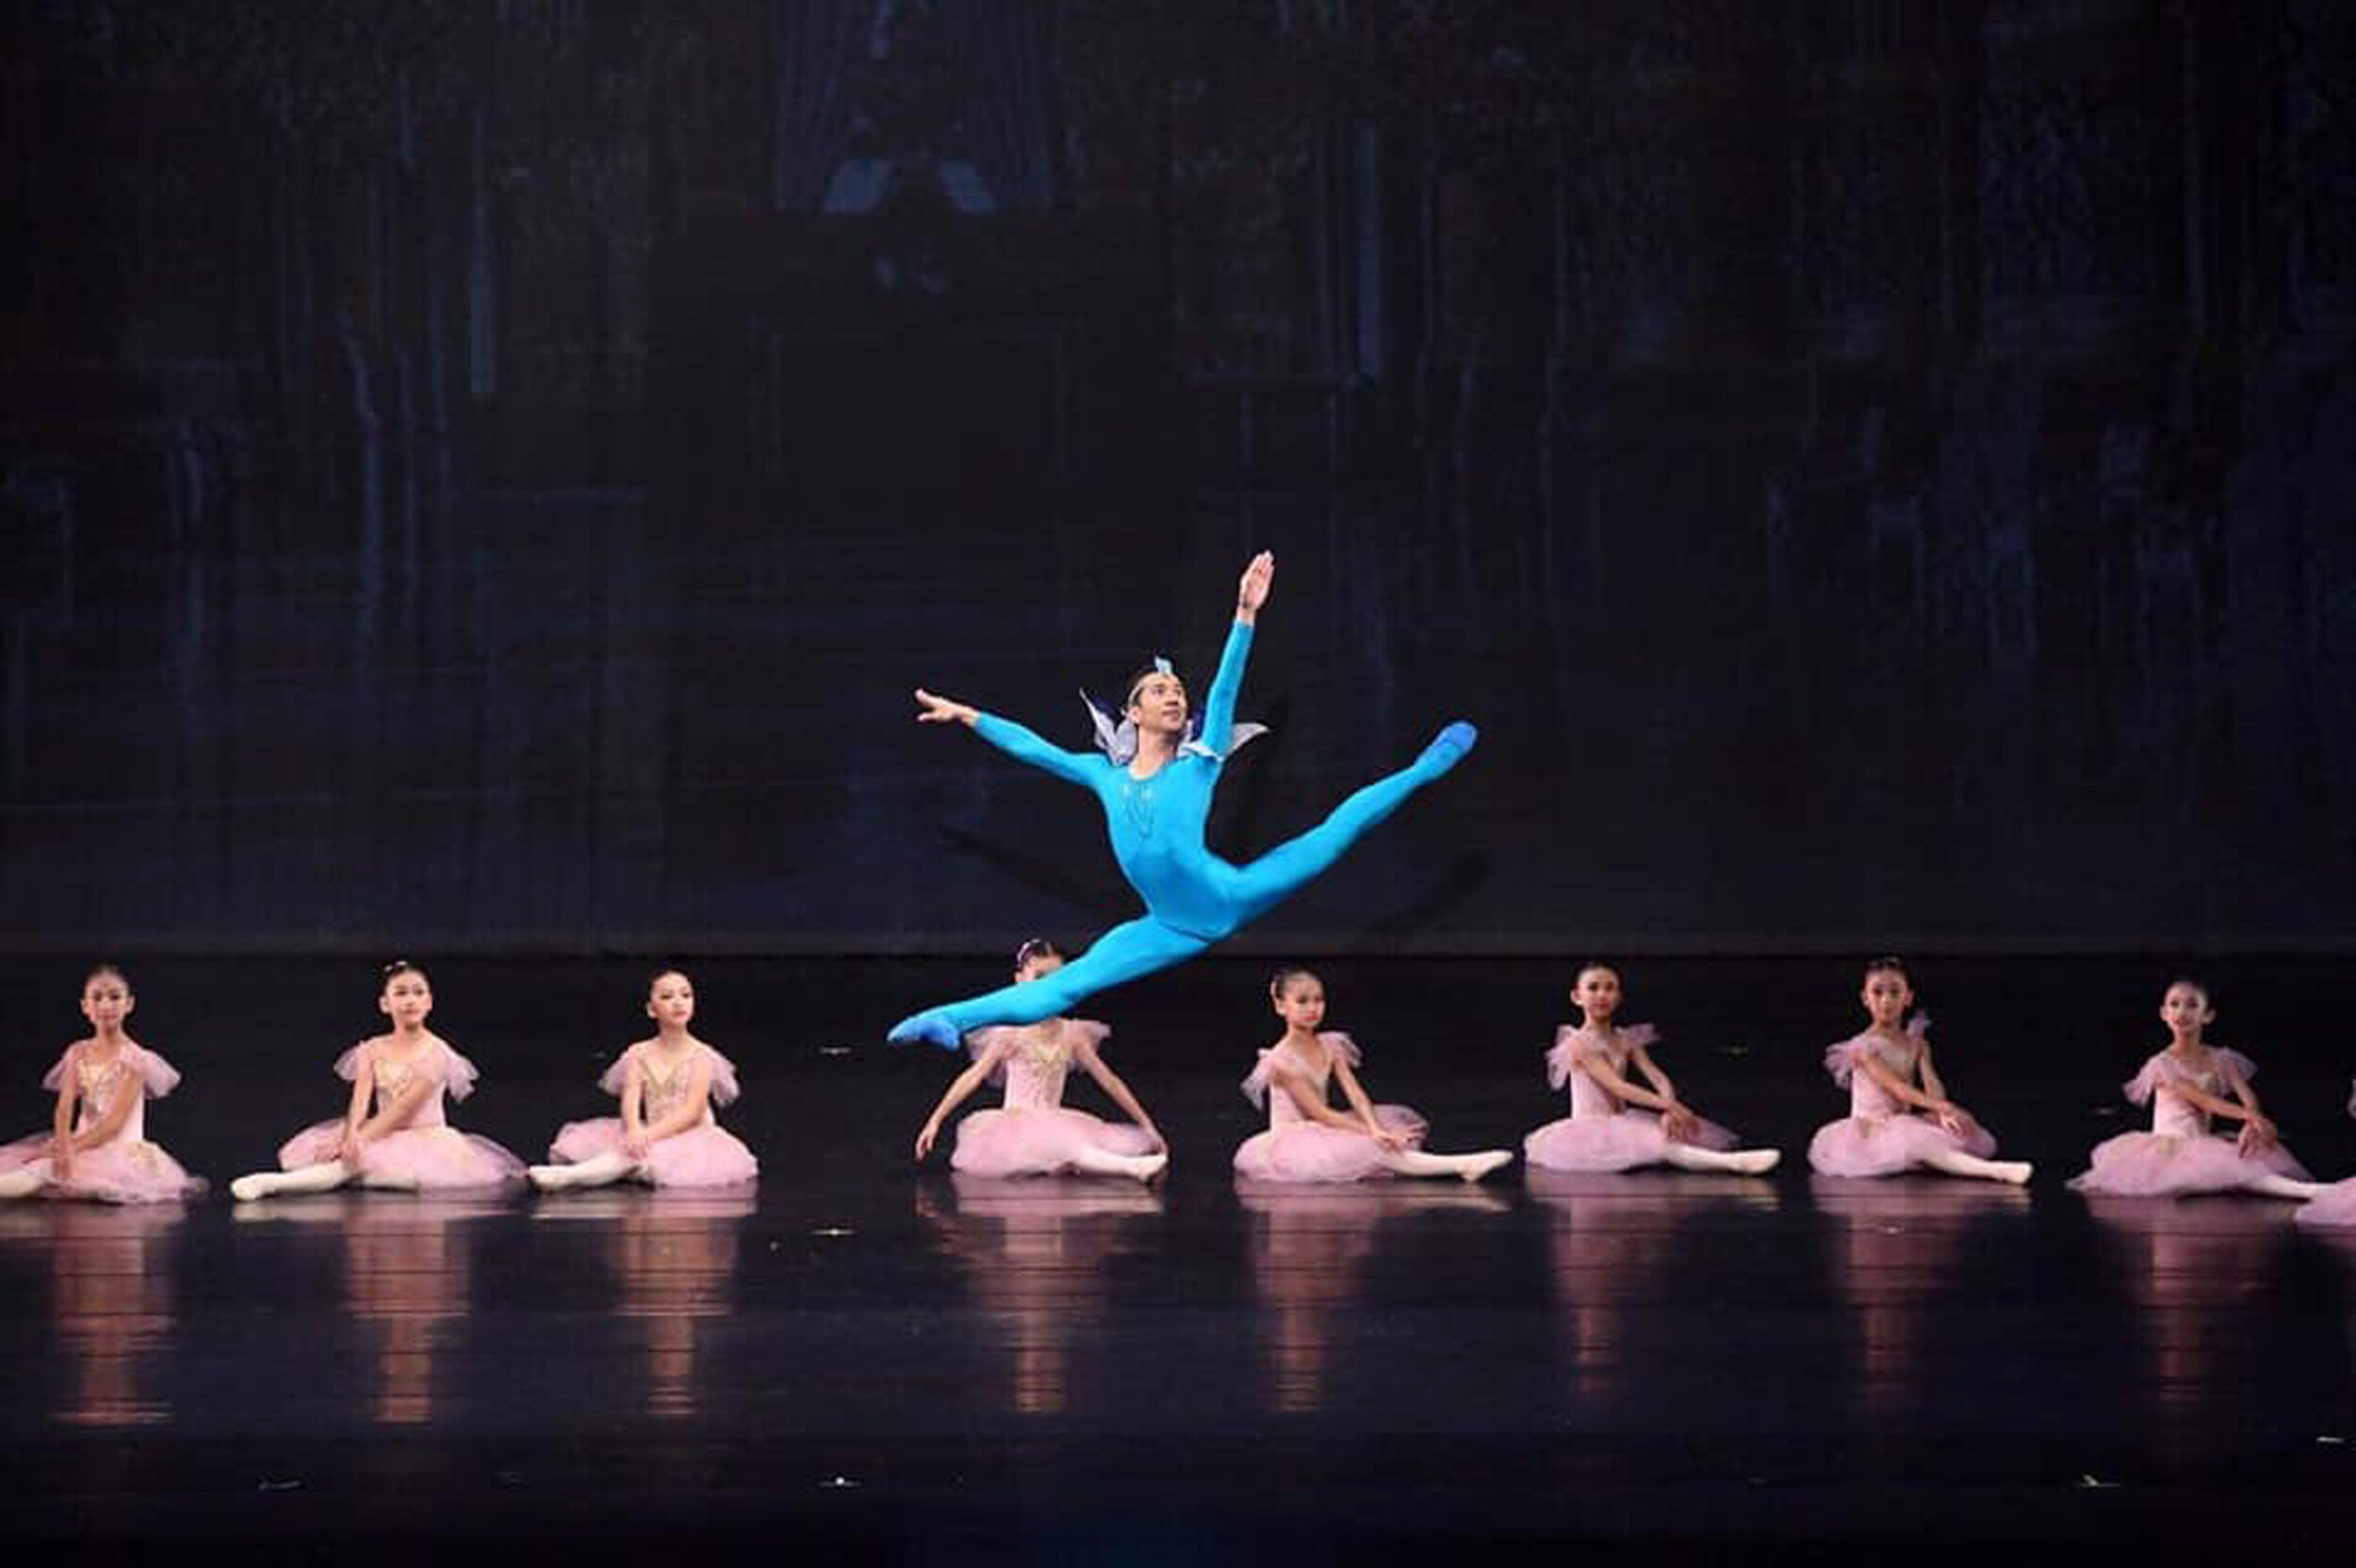 Brian Sevilla in the  Bluebird Variation,  together with the kiddie ballerinas of Zhongli Youth Ballet.